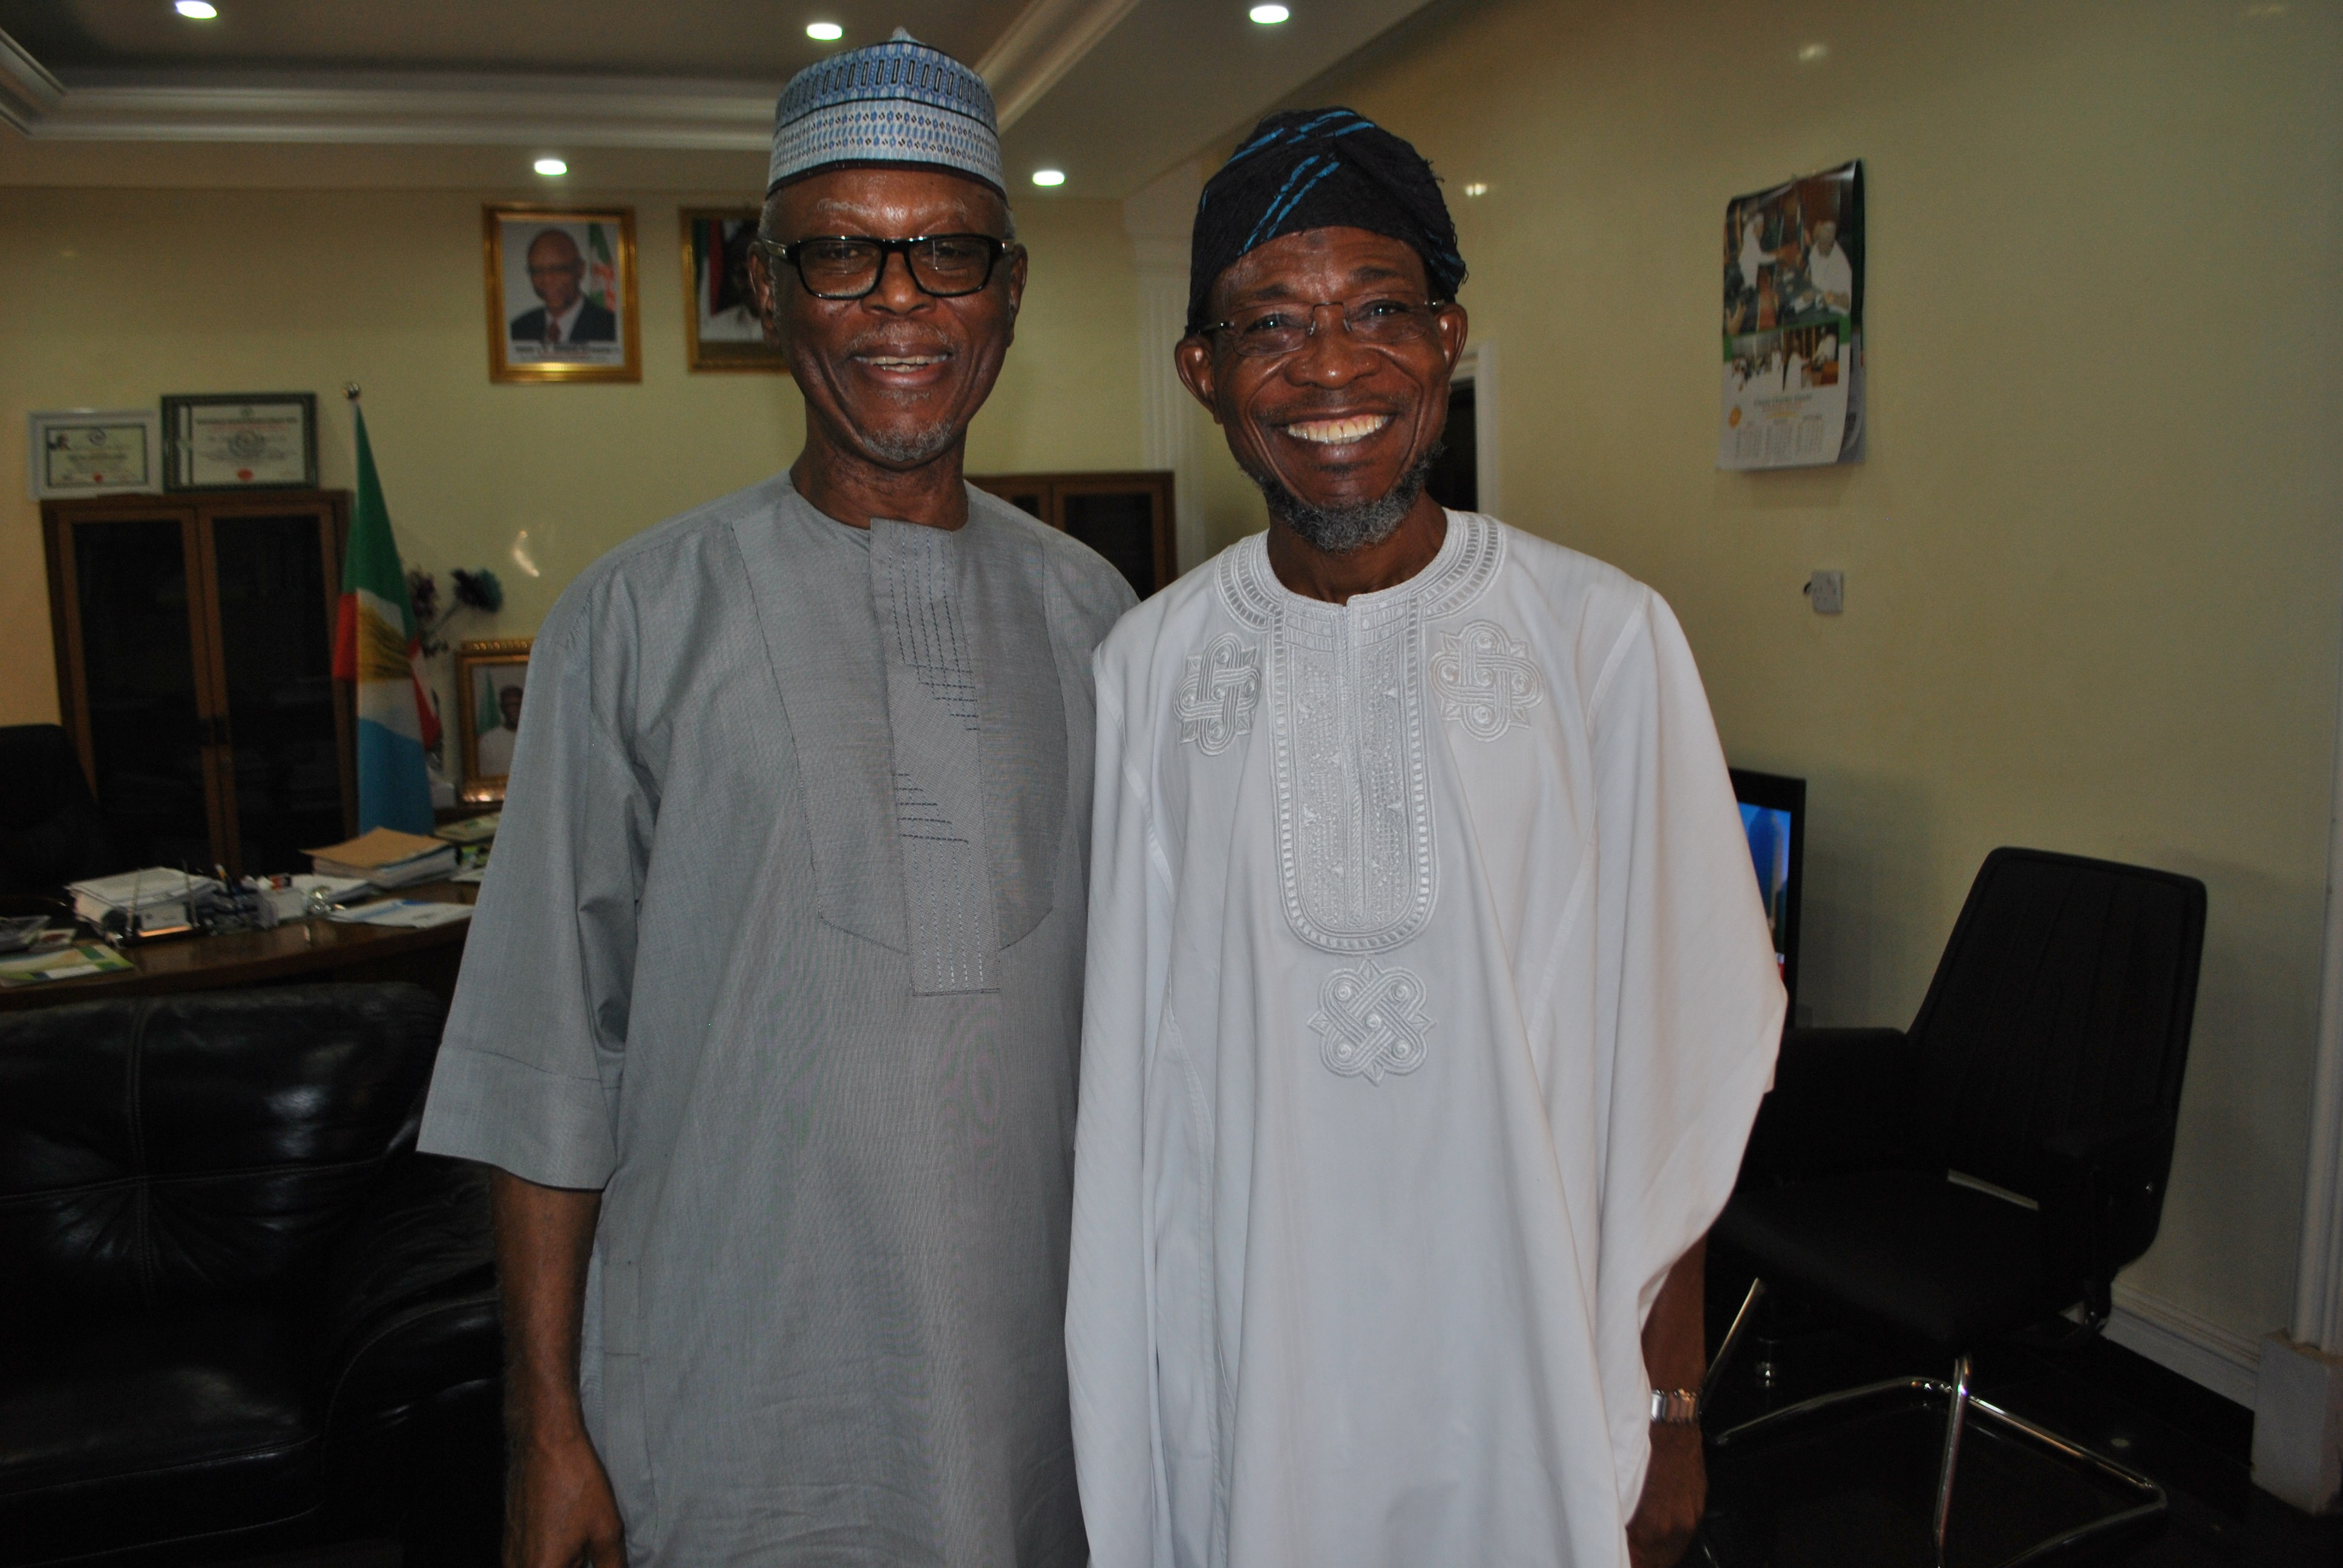 Photo of Osun 2018: Concerned APC stakeholders draw battle line, petition Oyegun, over alleged 'doctoring' of delegates lists, imposition by Aregbesola